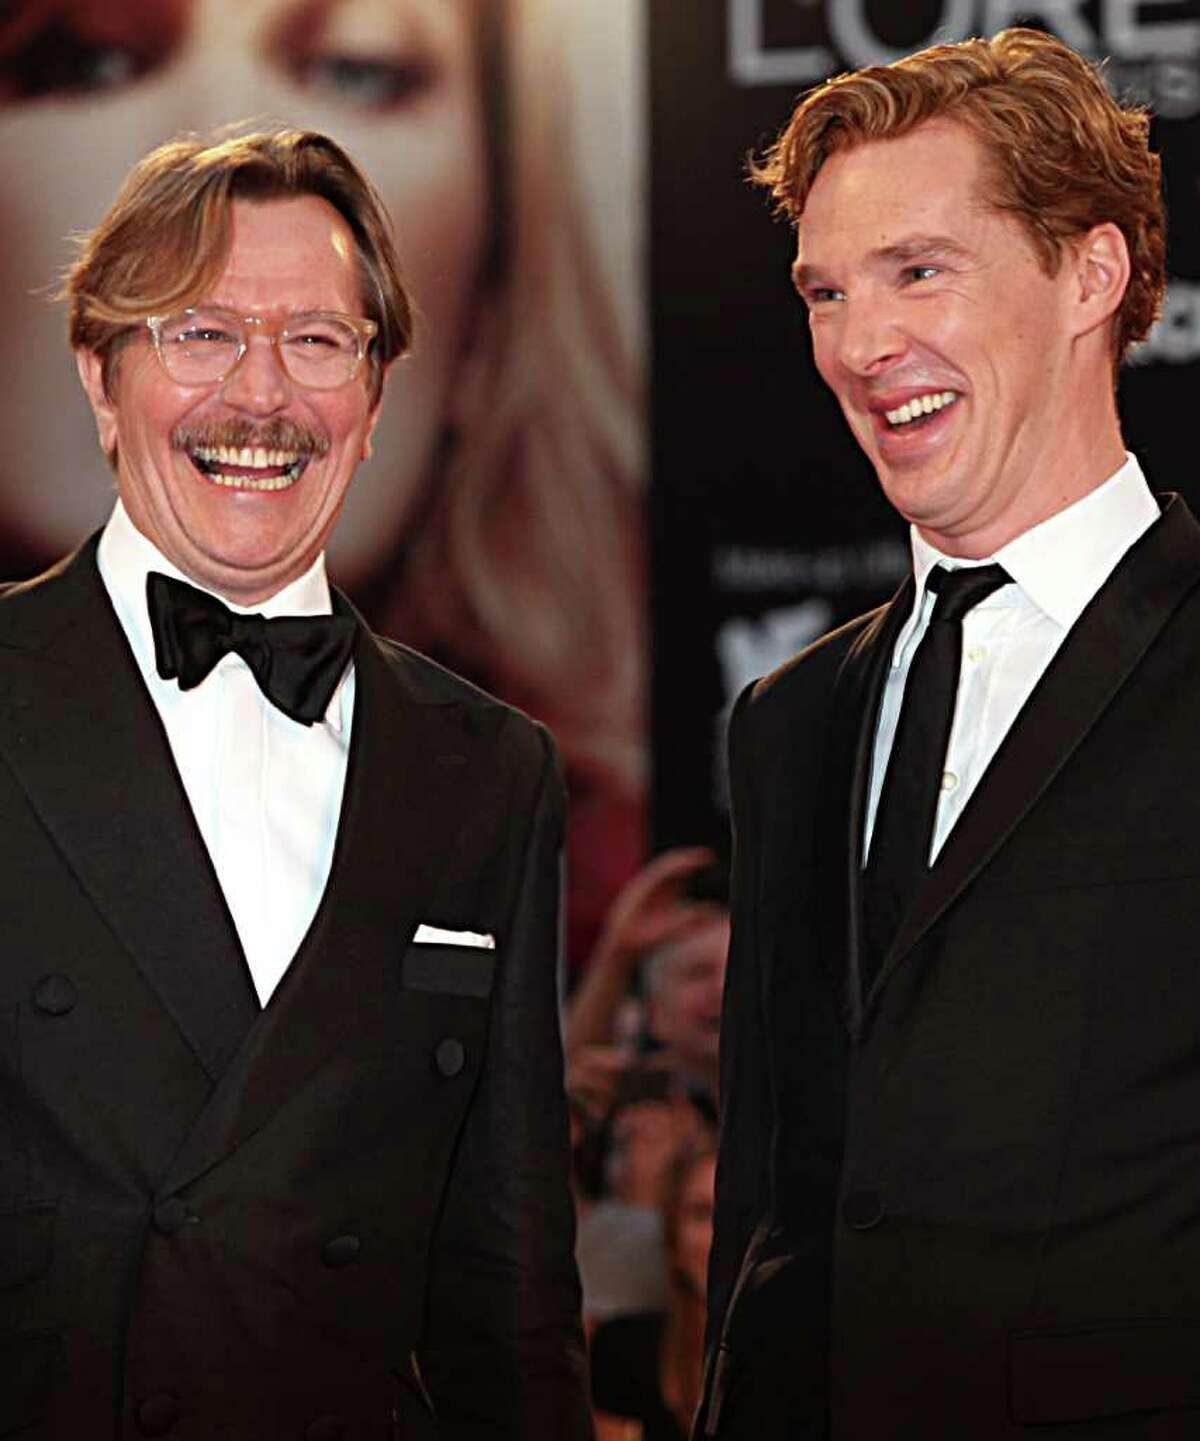 British actors Gary Oldman, left, and Benedict Cumberbatch share a joke as they arrive for the premiere of the film Tinker Tailor Soldier Spy at the 68th edition of the Venice Film Festival in Venice, Italy, Monday, Sept. 5, 2011. (AP Photo/Joel Ryan)